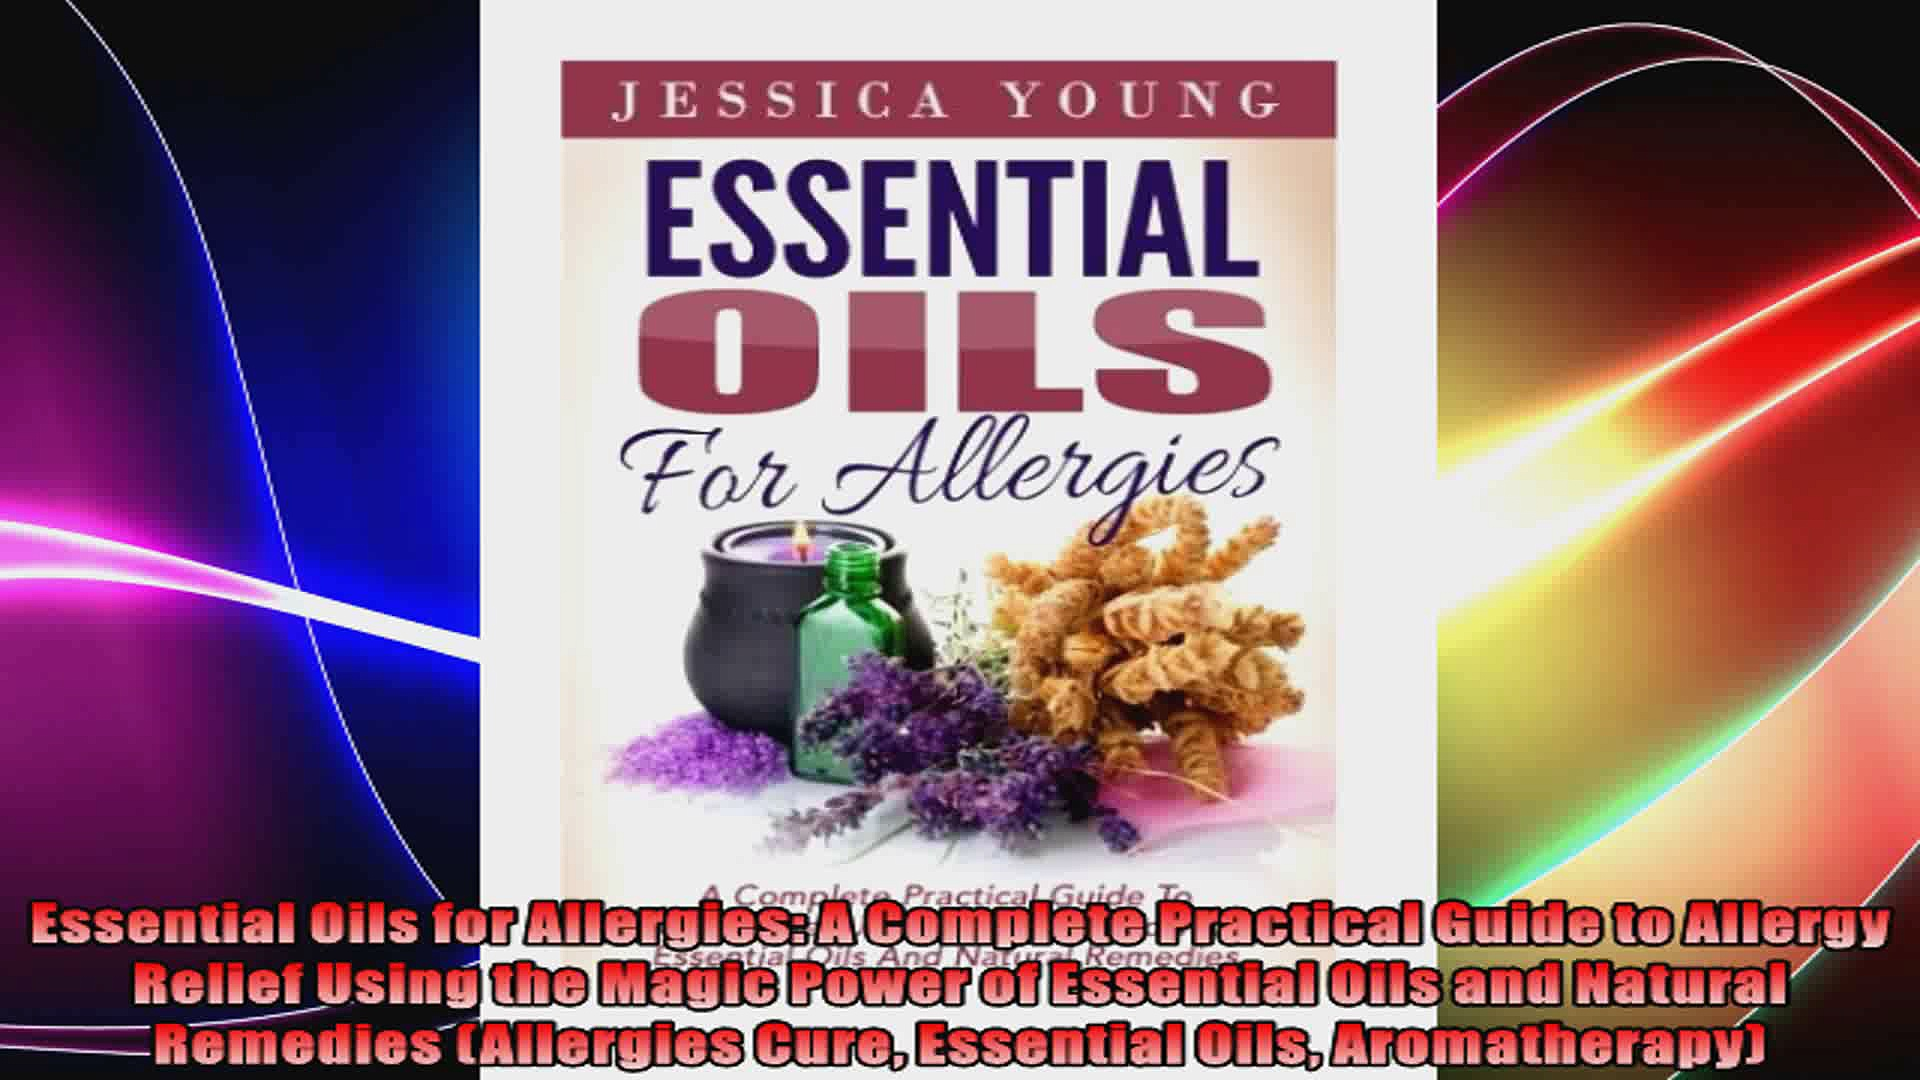 Essential Oils for Allergies A Complete Practical Guide to Allergy Relief Using the Magic